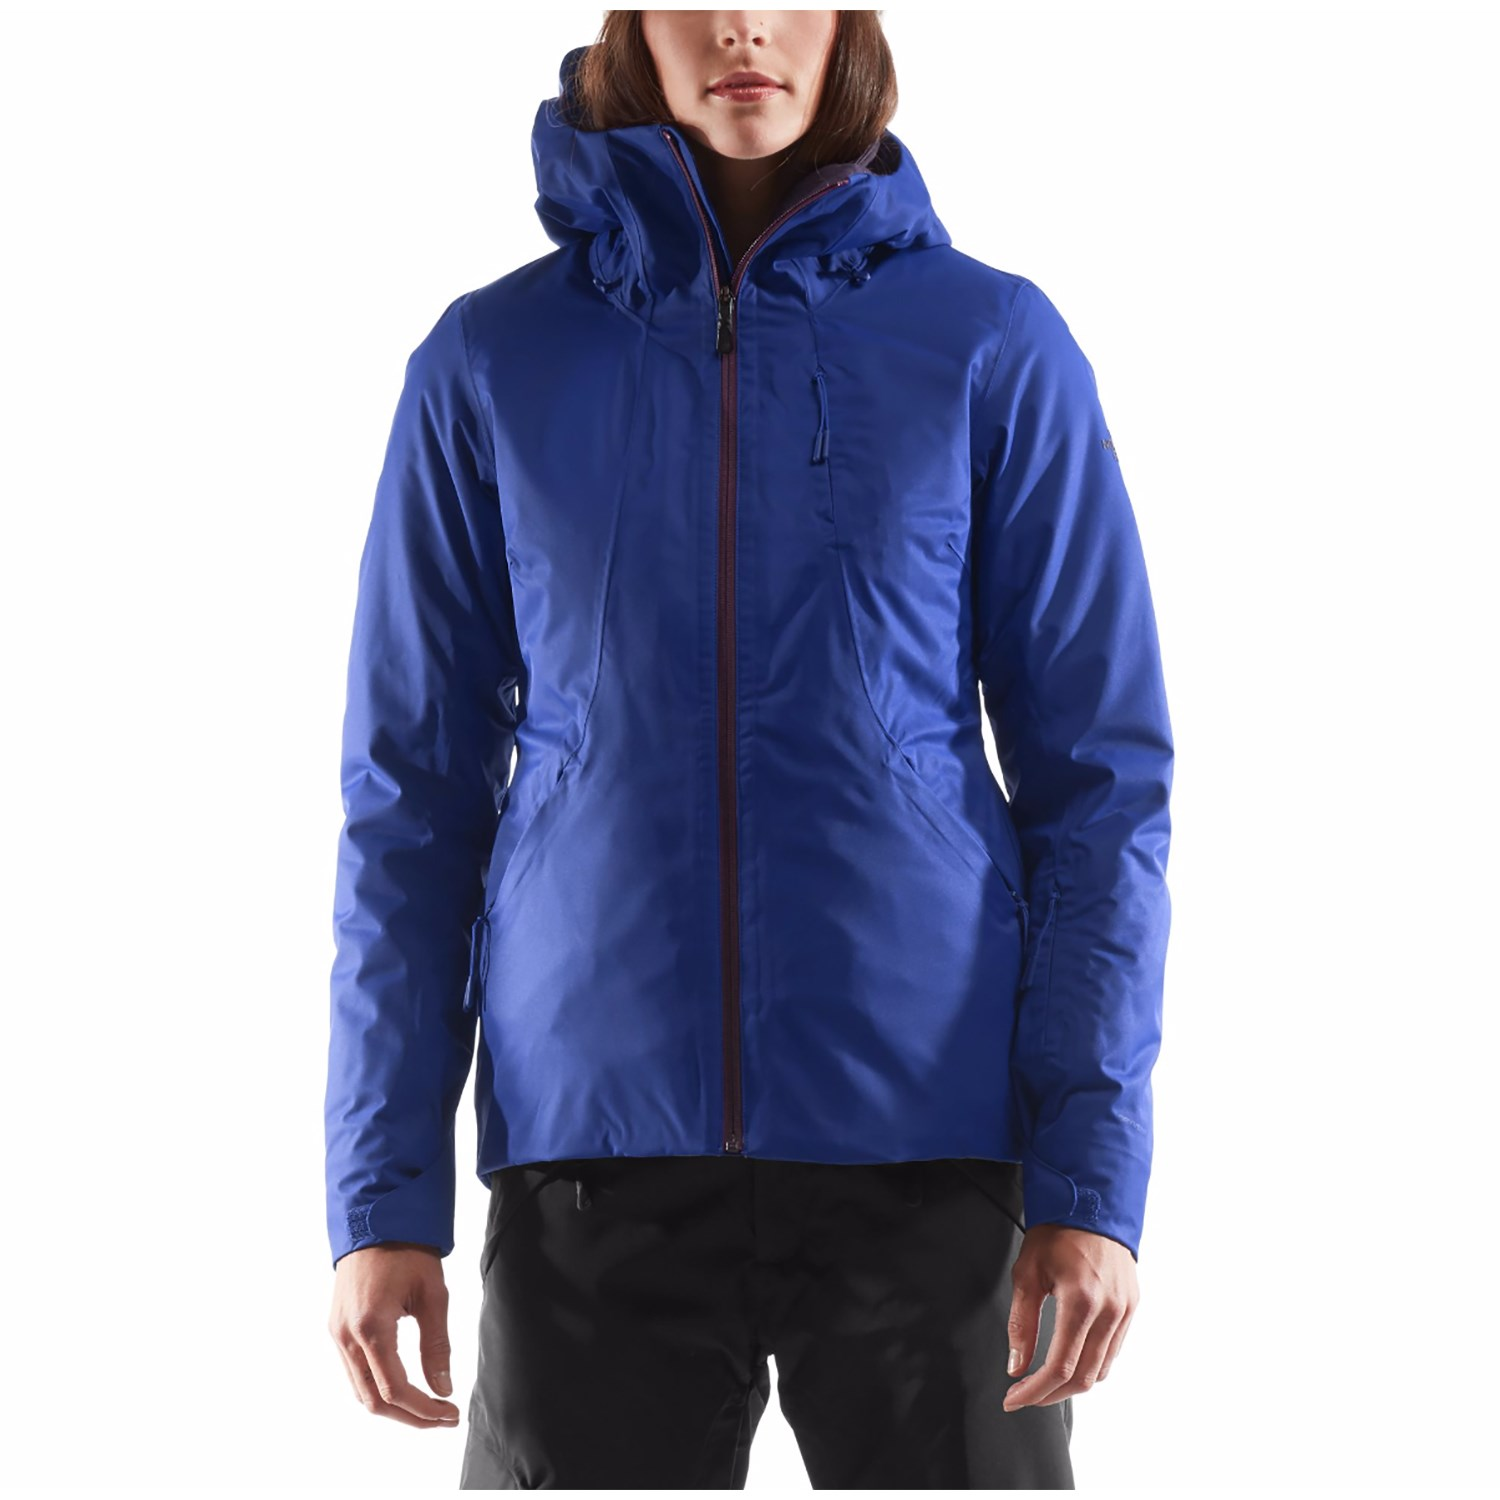 034865a21052 The North Face Clementine Triclimate Jacket - Women s